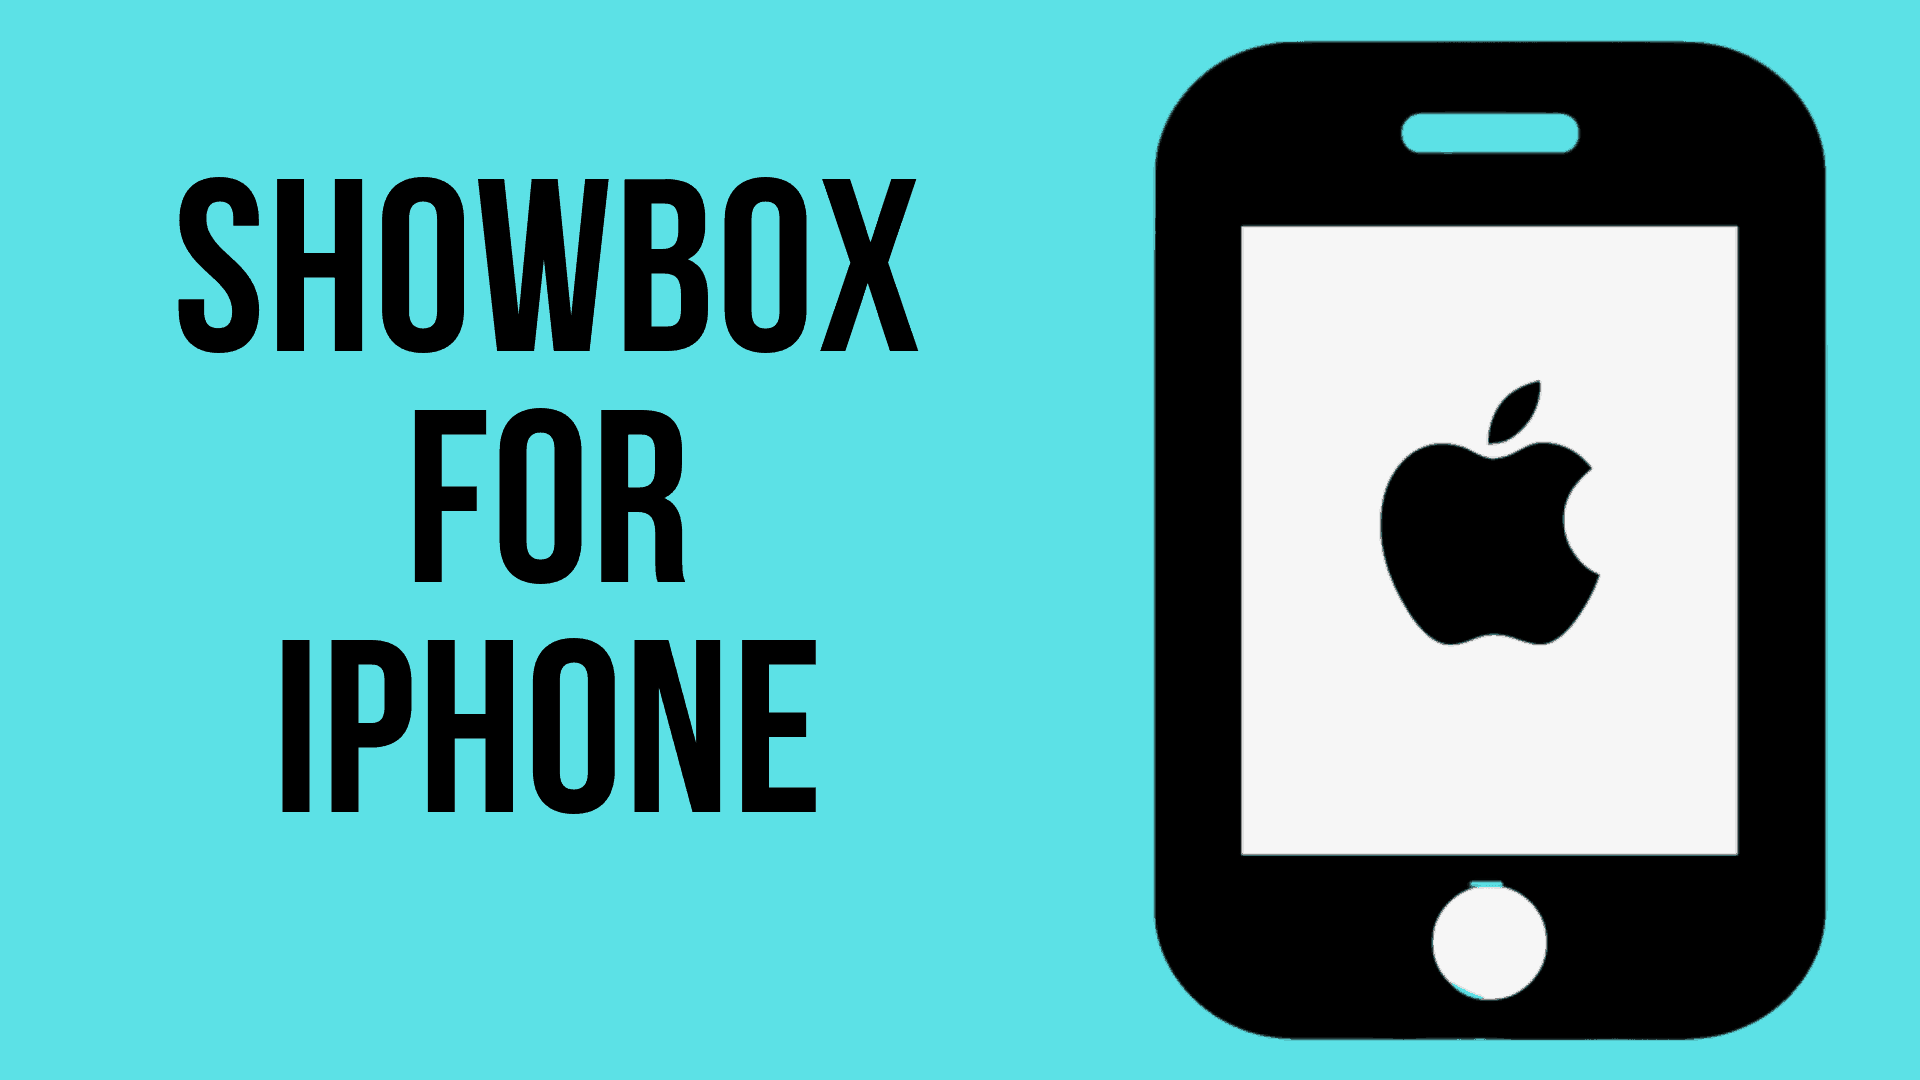 How to Install (Download) Showbox On iPhone? Iphone